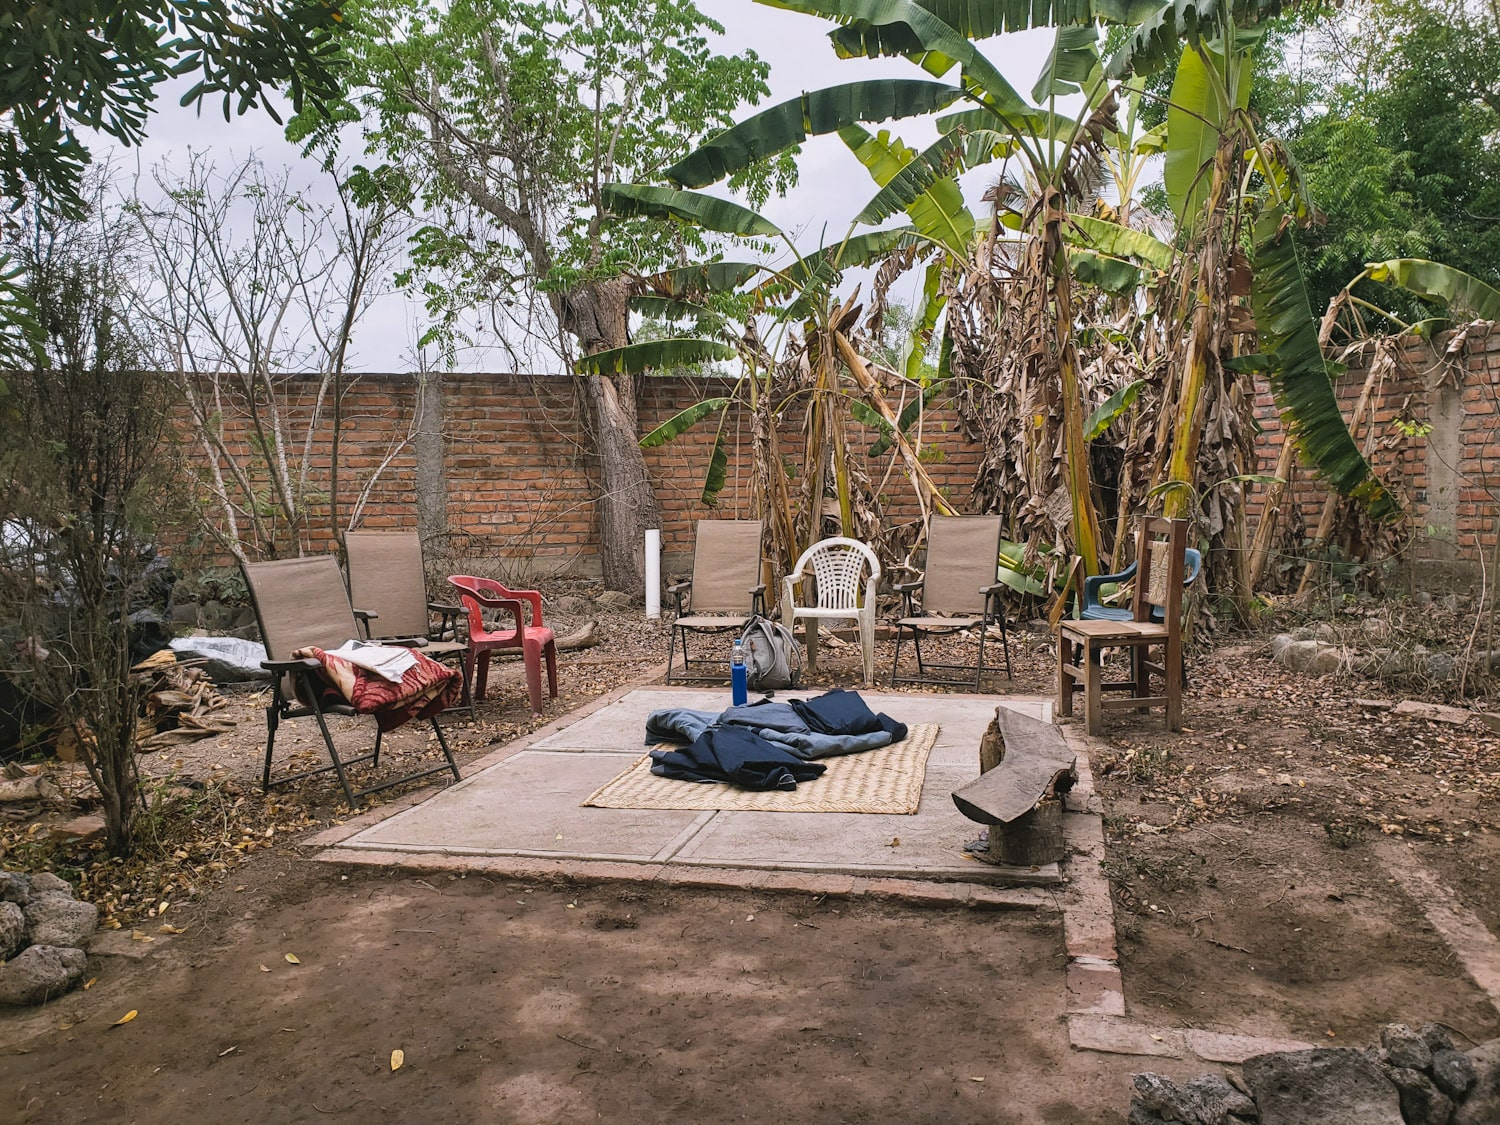 Temazcal Ceremony Mexico: Ultimate guide to experiencing a temazcal ceremony with locals in Mexico. #mexico #temazcal #ritual #travel #bucketlist | bucketlist bri